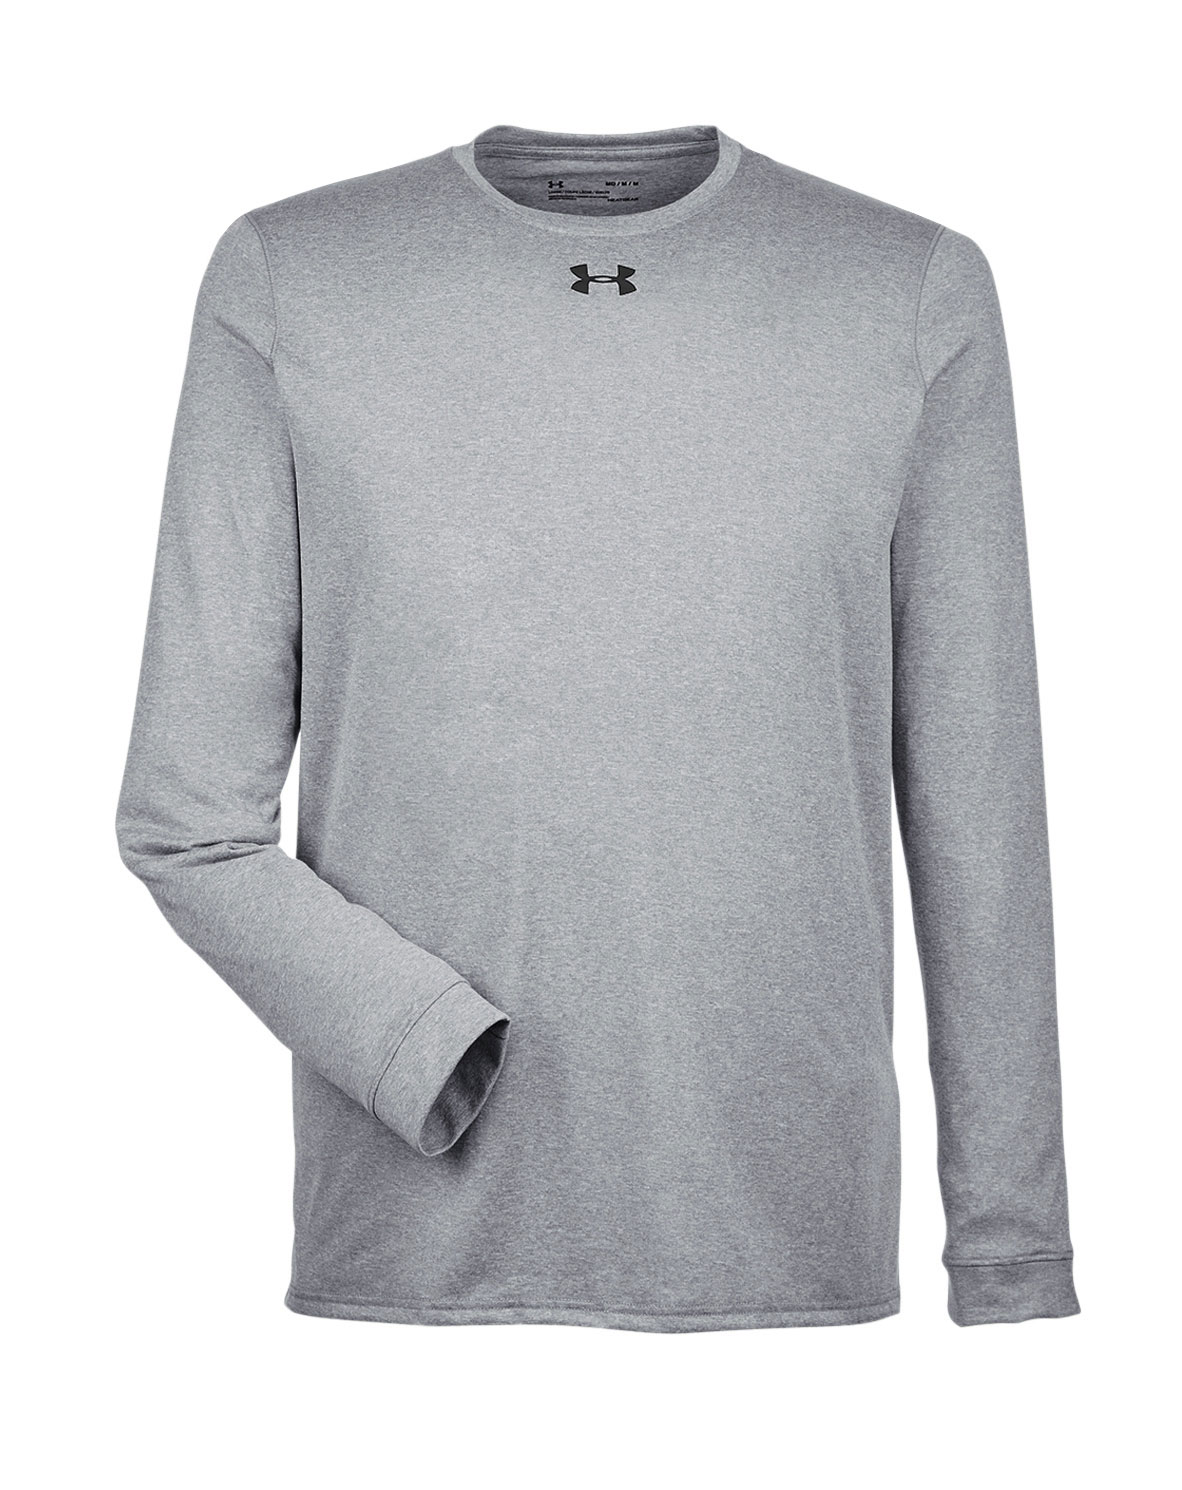 Under Armour Mens Long-Sleeve Locker Tee 2.0